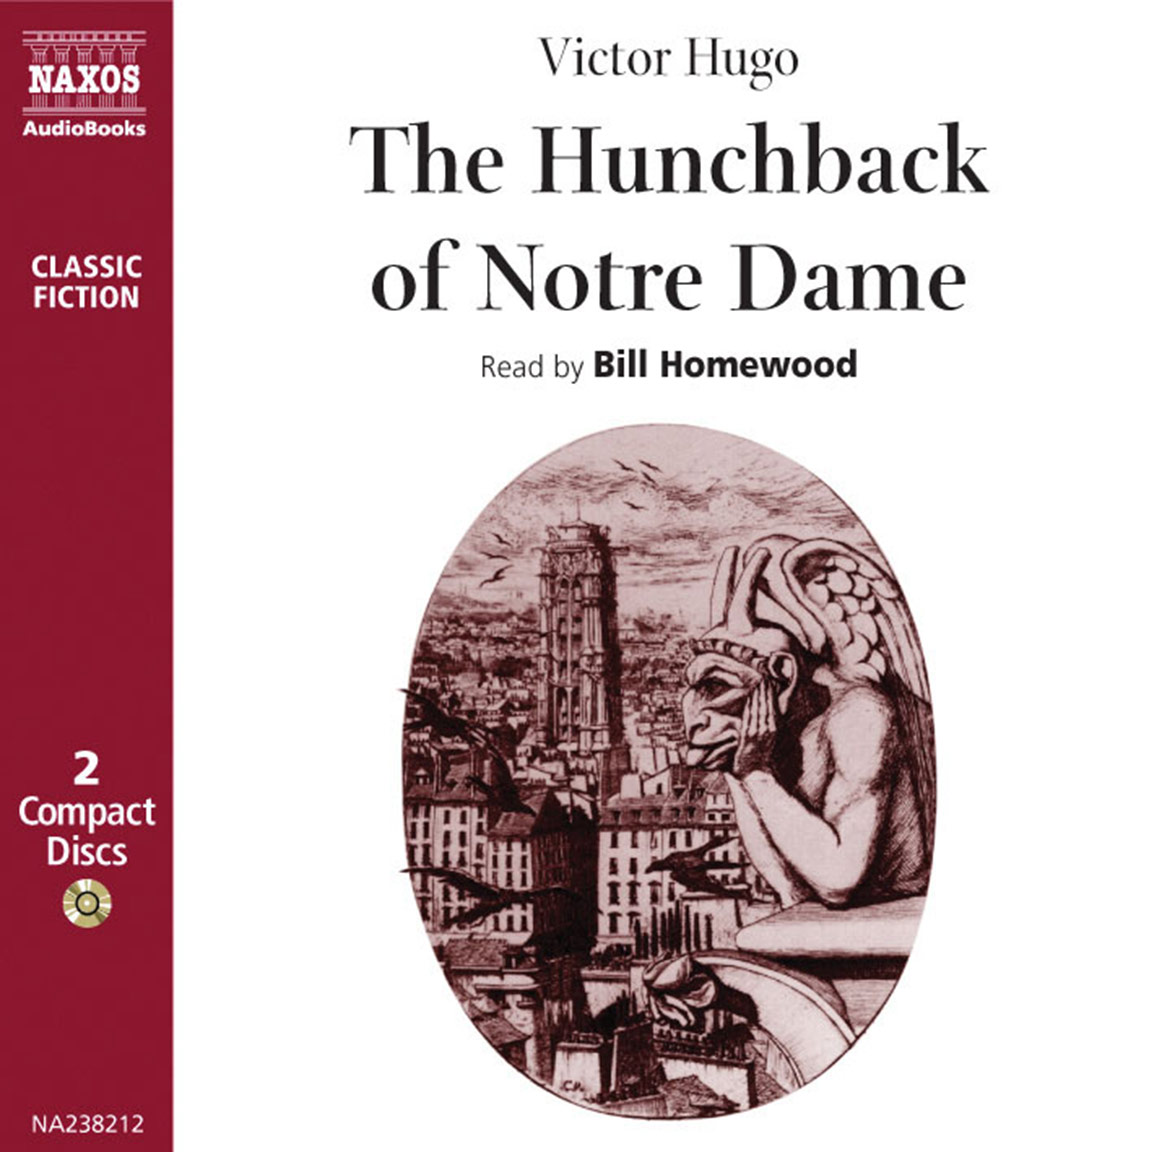 an analysis of quasimodos love in the hunchback of notre dame a novel by victor hugo Unlock the more straightforward side of the hunchback of notre dame with this concise and insightful summary and analysis this engaging summary presents an analysis of the hunchback of notre dame by victor hugo, the tragic tale of a deformed bell-ringer, a beautiful roma girl and the complicated love affair in which they become entangled.